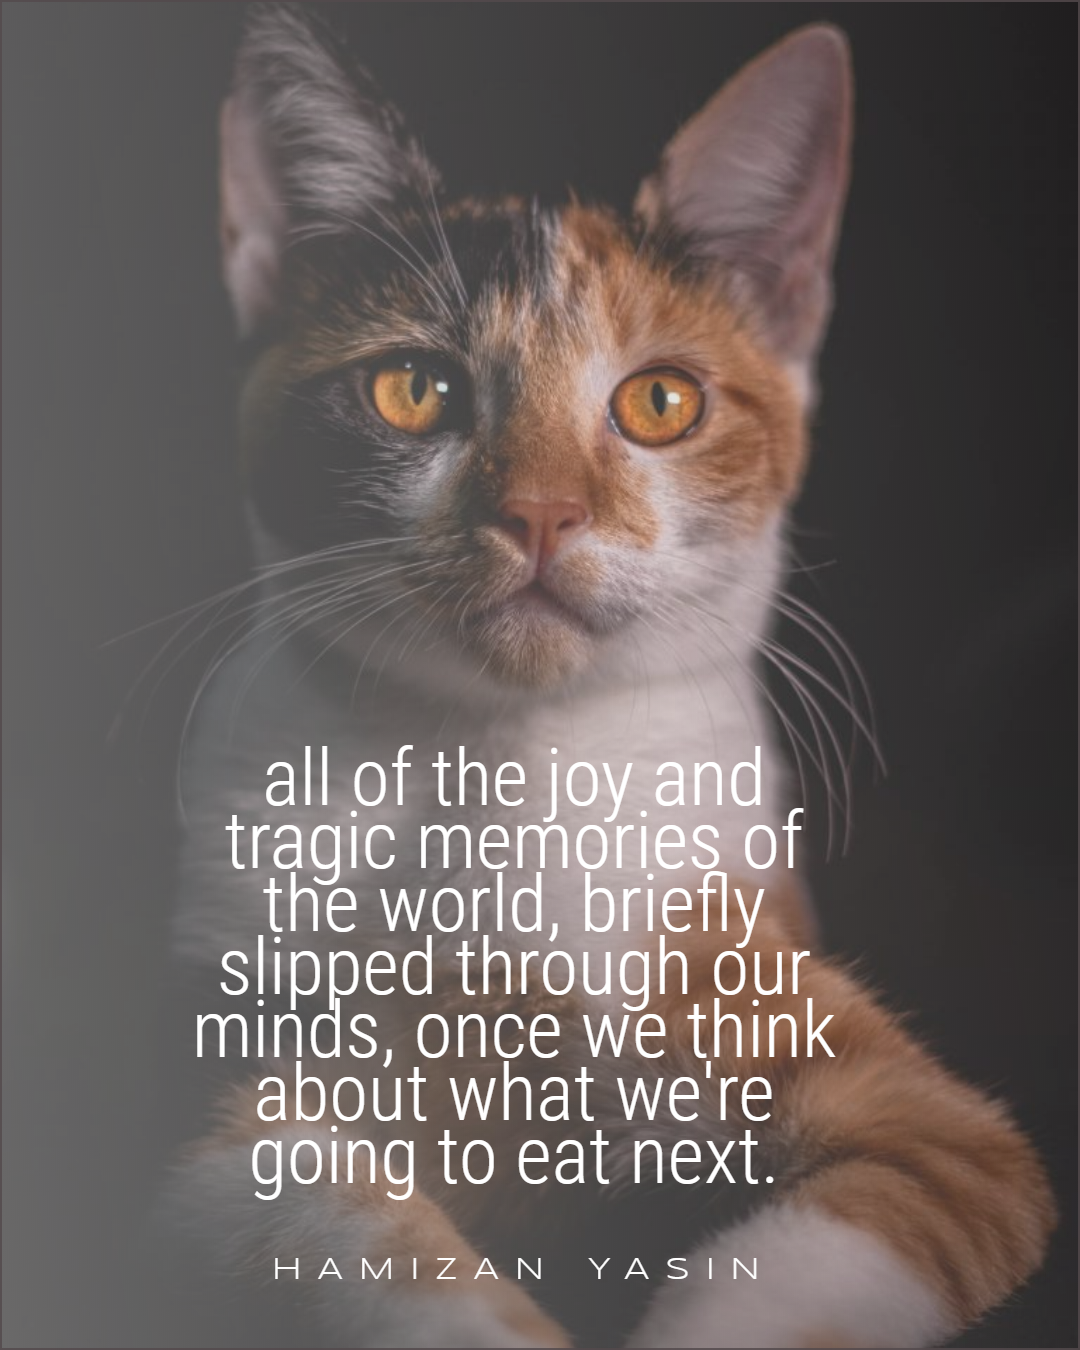 all of the joy and tragic memories of the world, briefly slipped through our minds, once we think about what we're going to eat next. – HAMIZAN YASIN [1800 x 1350]